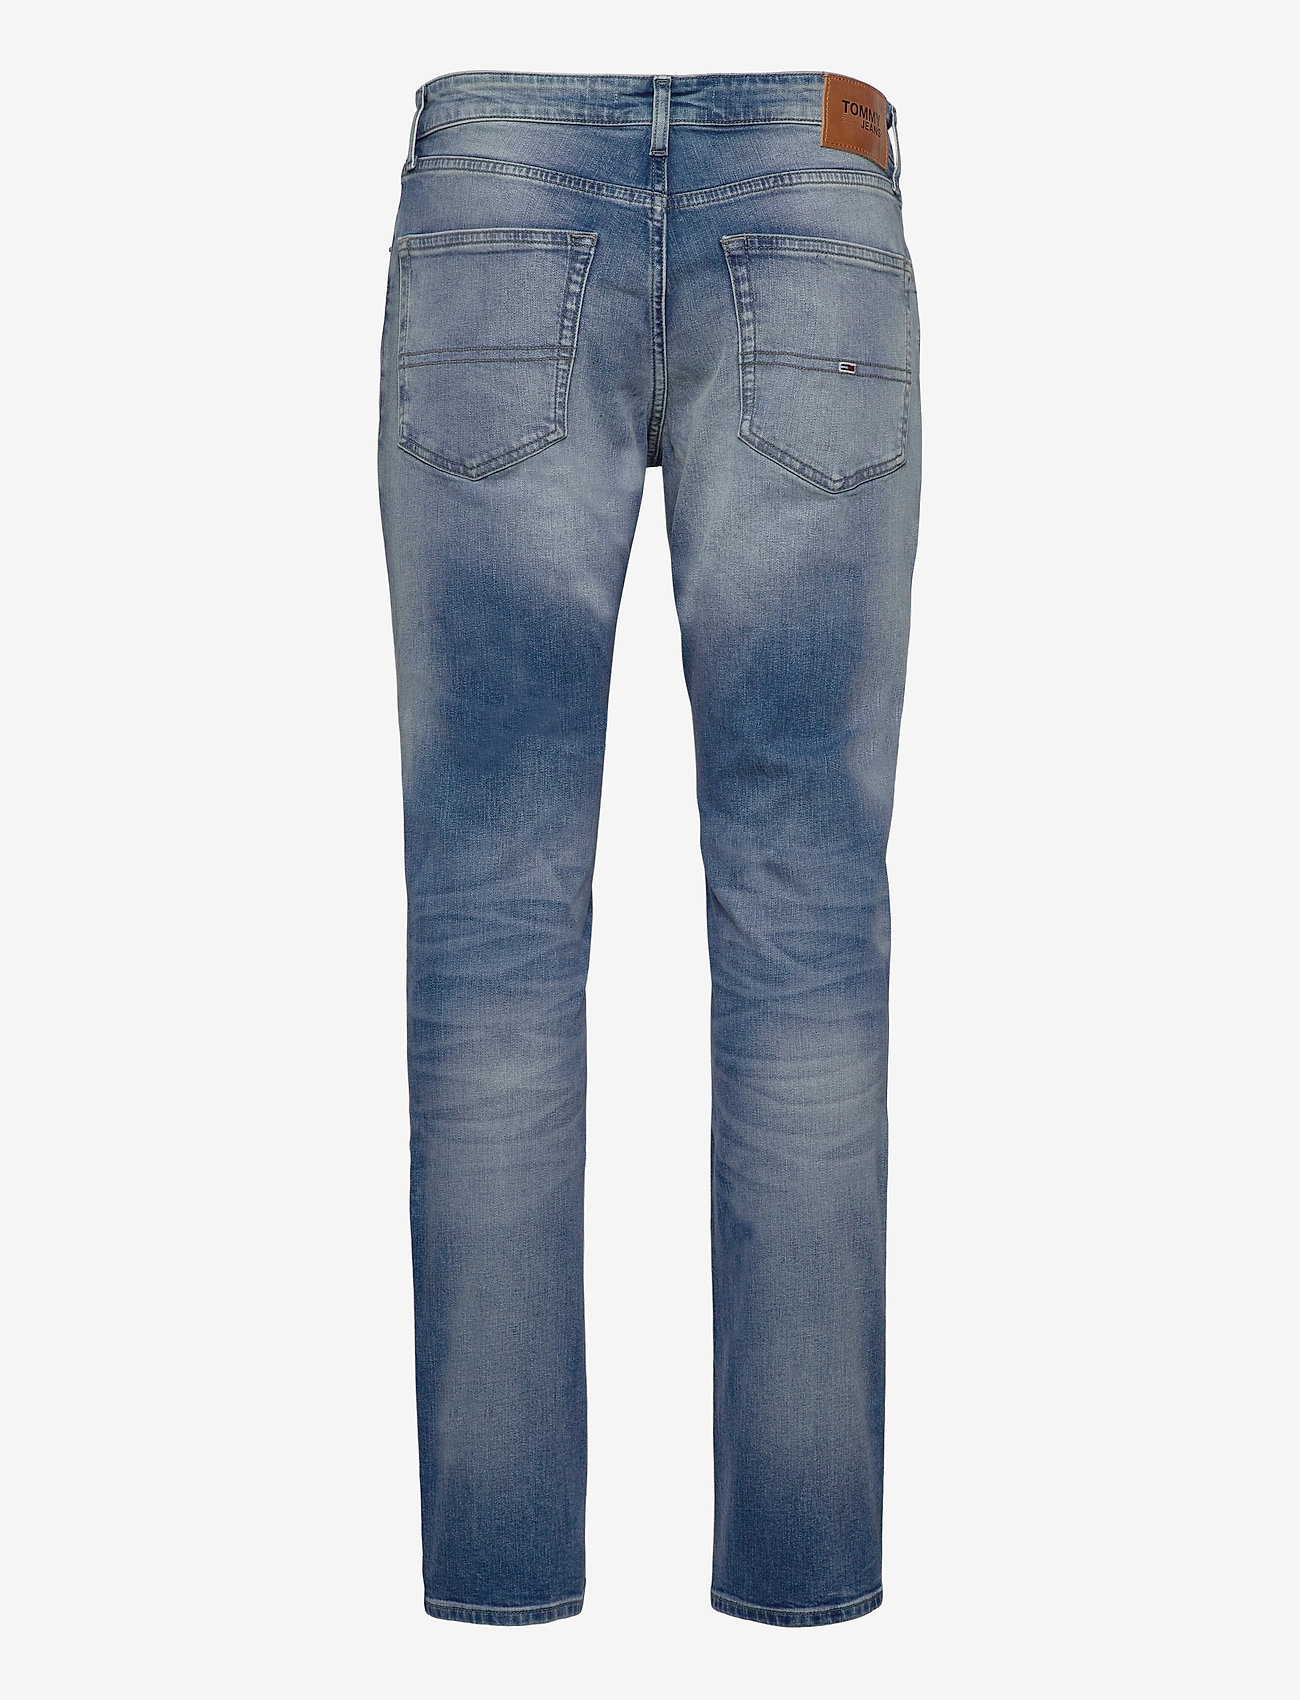 Tommy Jeans - SCANTON SLIM WLBS - slim jeans - wilson light blue stretch - 1